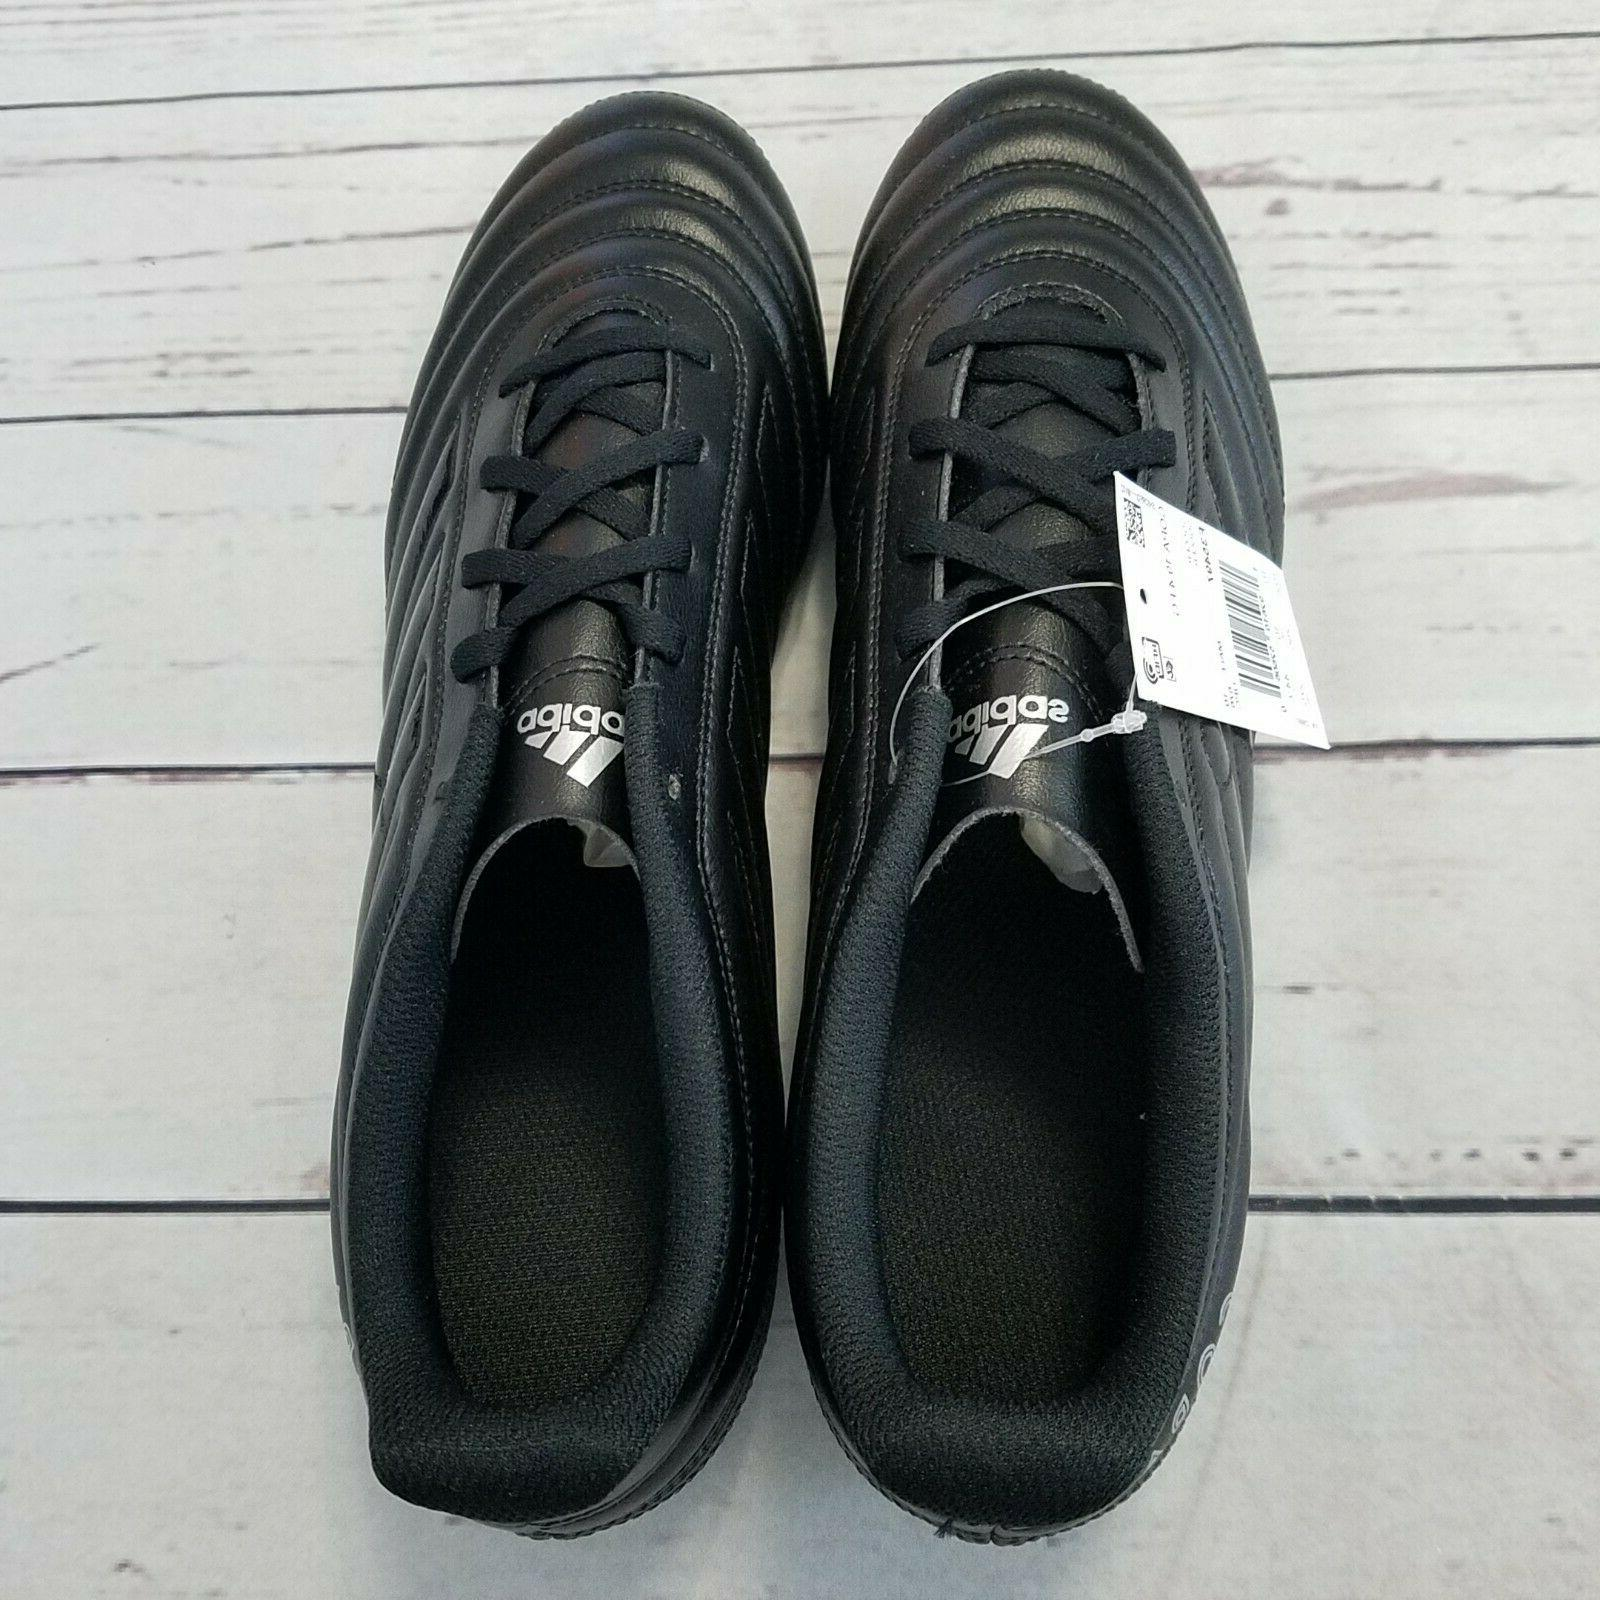 Adidas Copa 19.4 Firm Men's Soccer Cleats Size